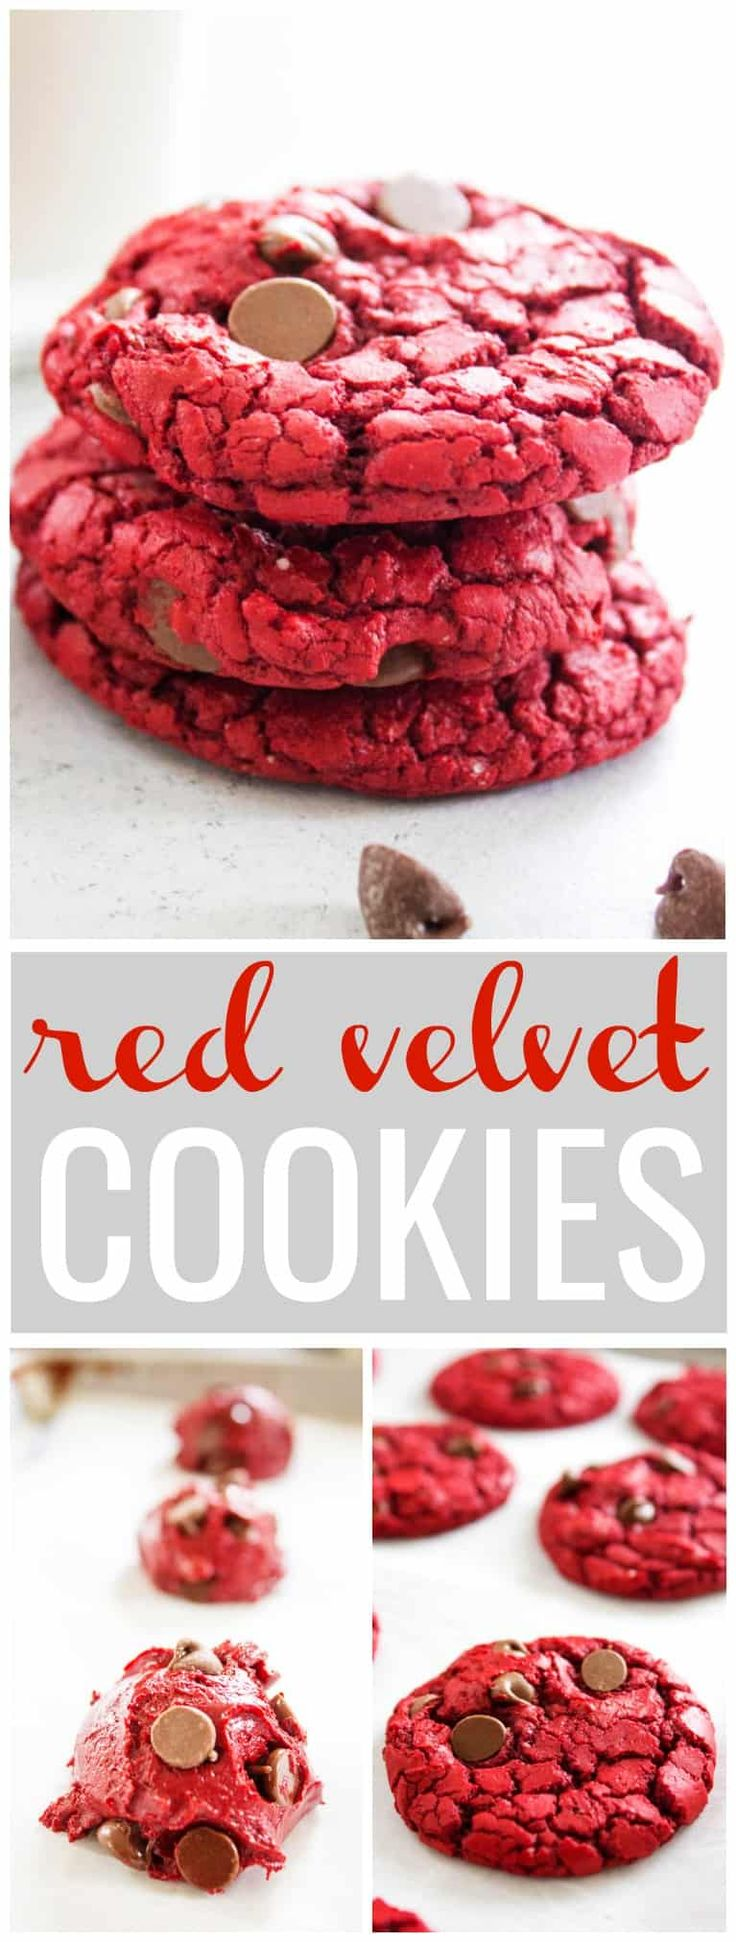 RED VELVET CAKE MIX COOKIES- Easy and made with only with 4 ingredients, these cookies are insanely delicious. Perfect for Valentines Day. #redvelvet #redvelvetcookies #cookies #redvelvetcake